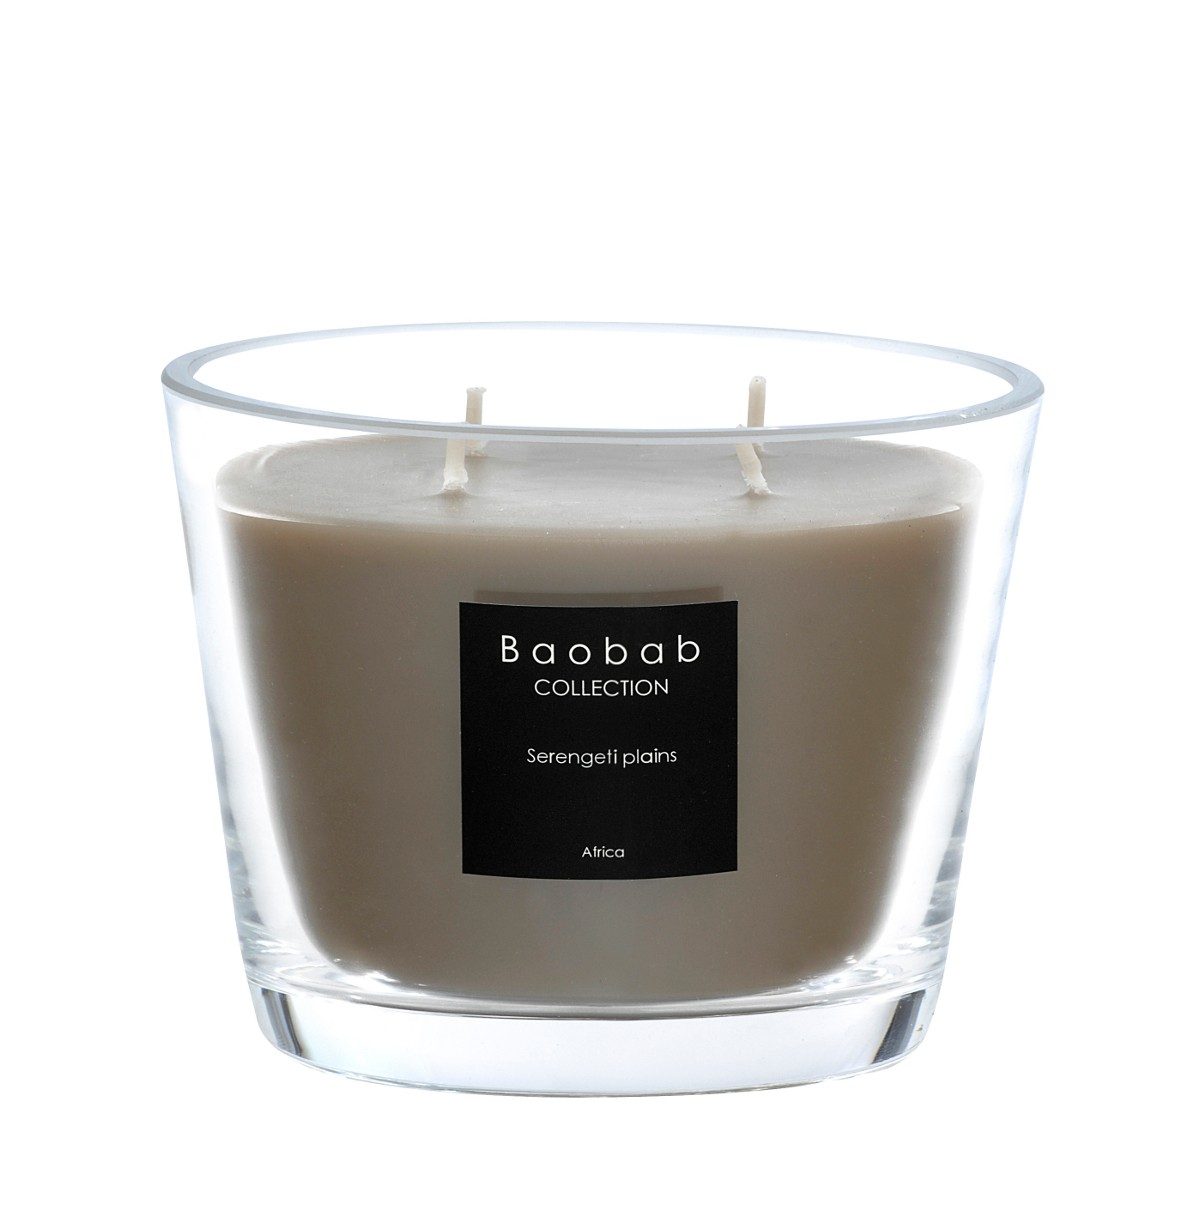 Bougie Baobab Paris Bougie Serengeti Plains De Baobab Collection 4 Tailles